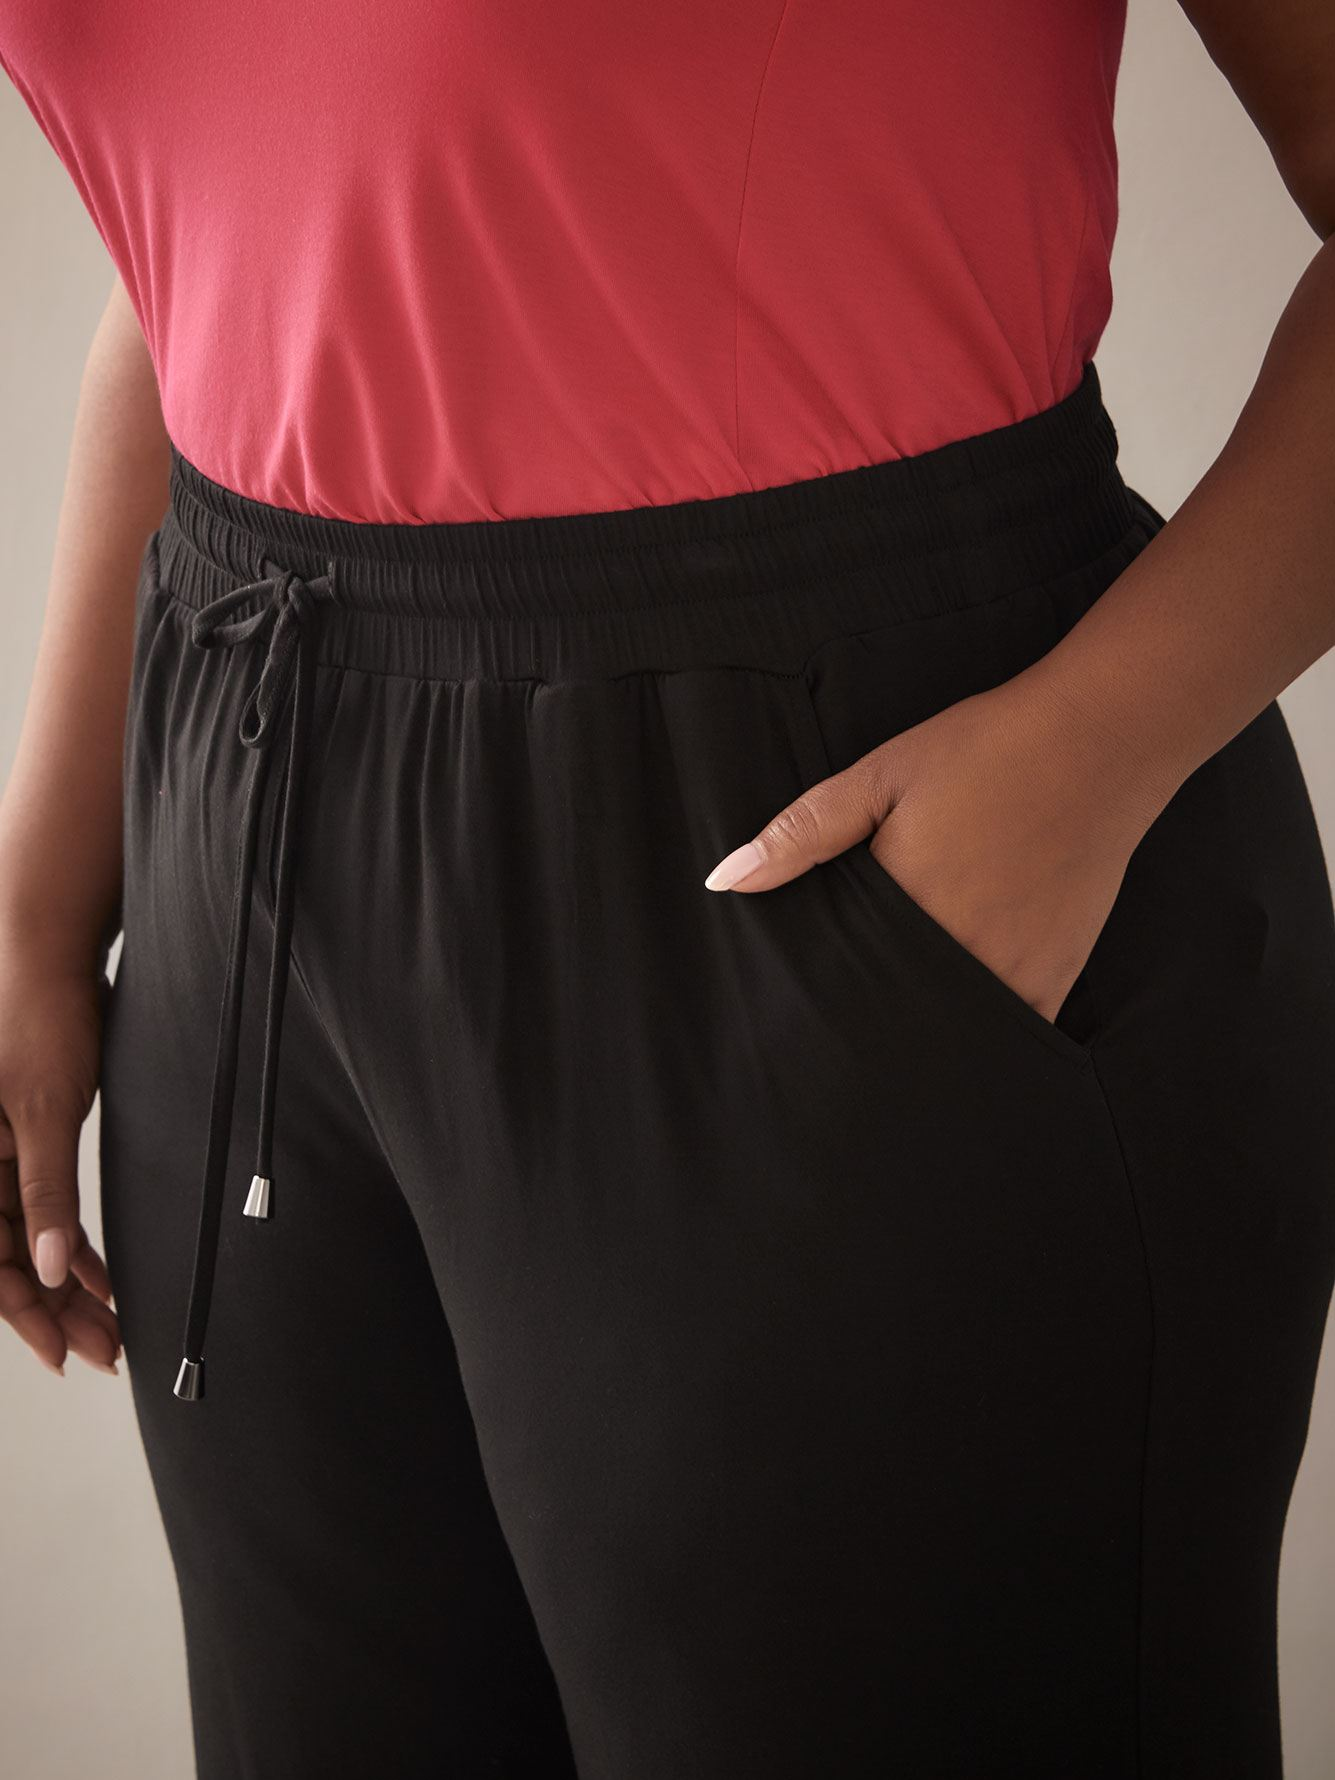 Black Gaucho Pants - In Every Story